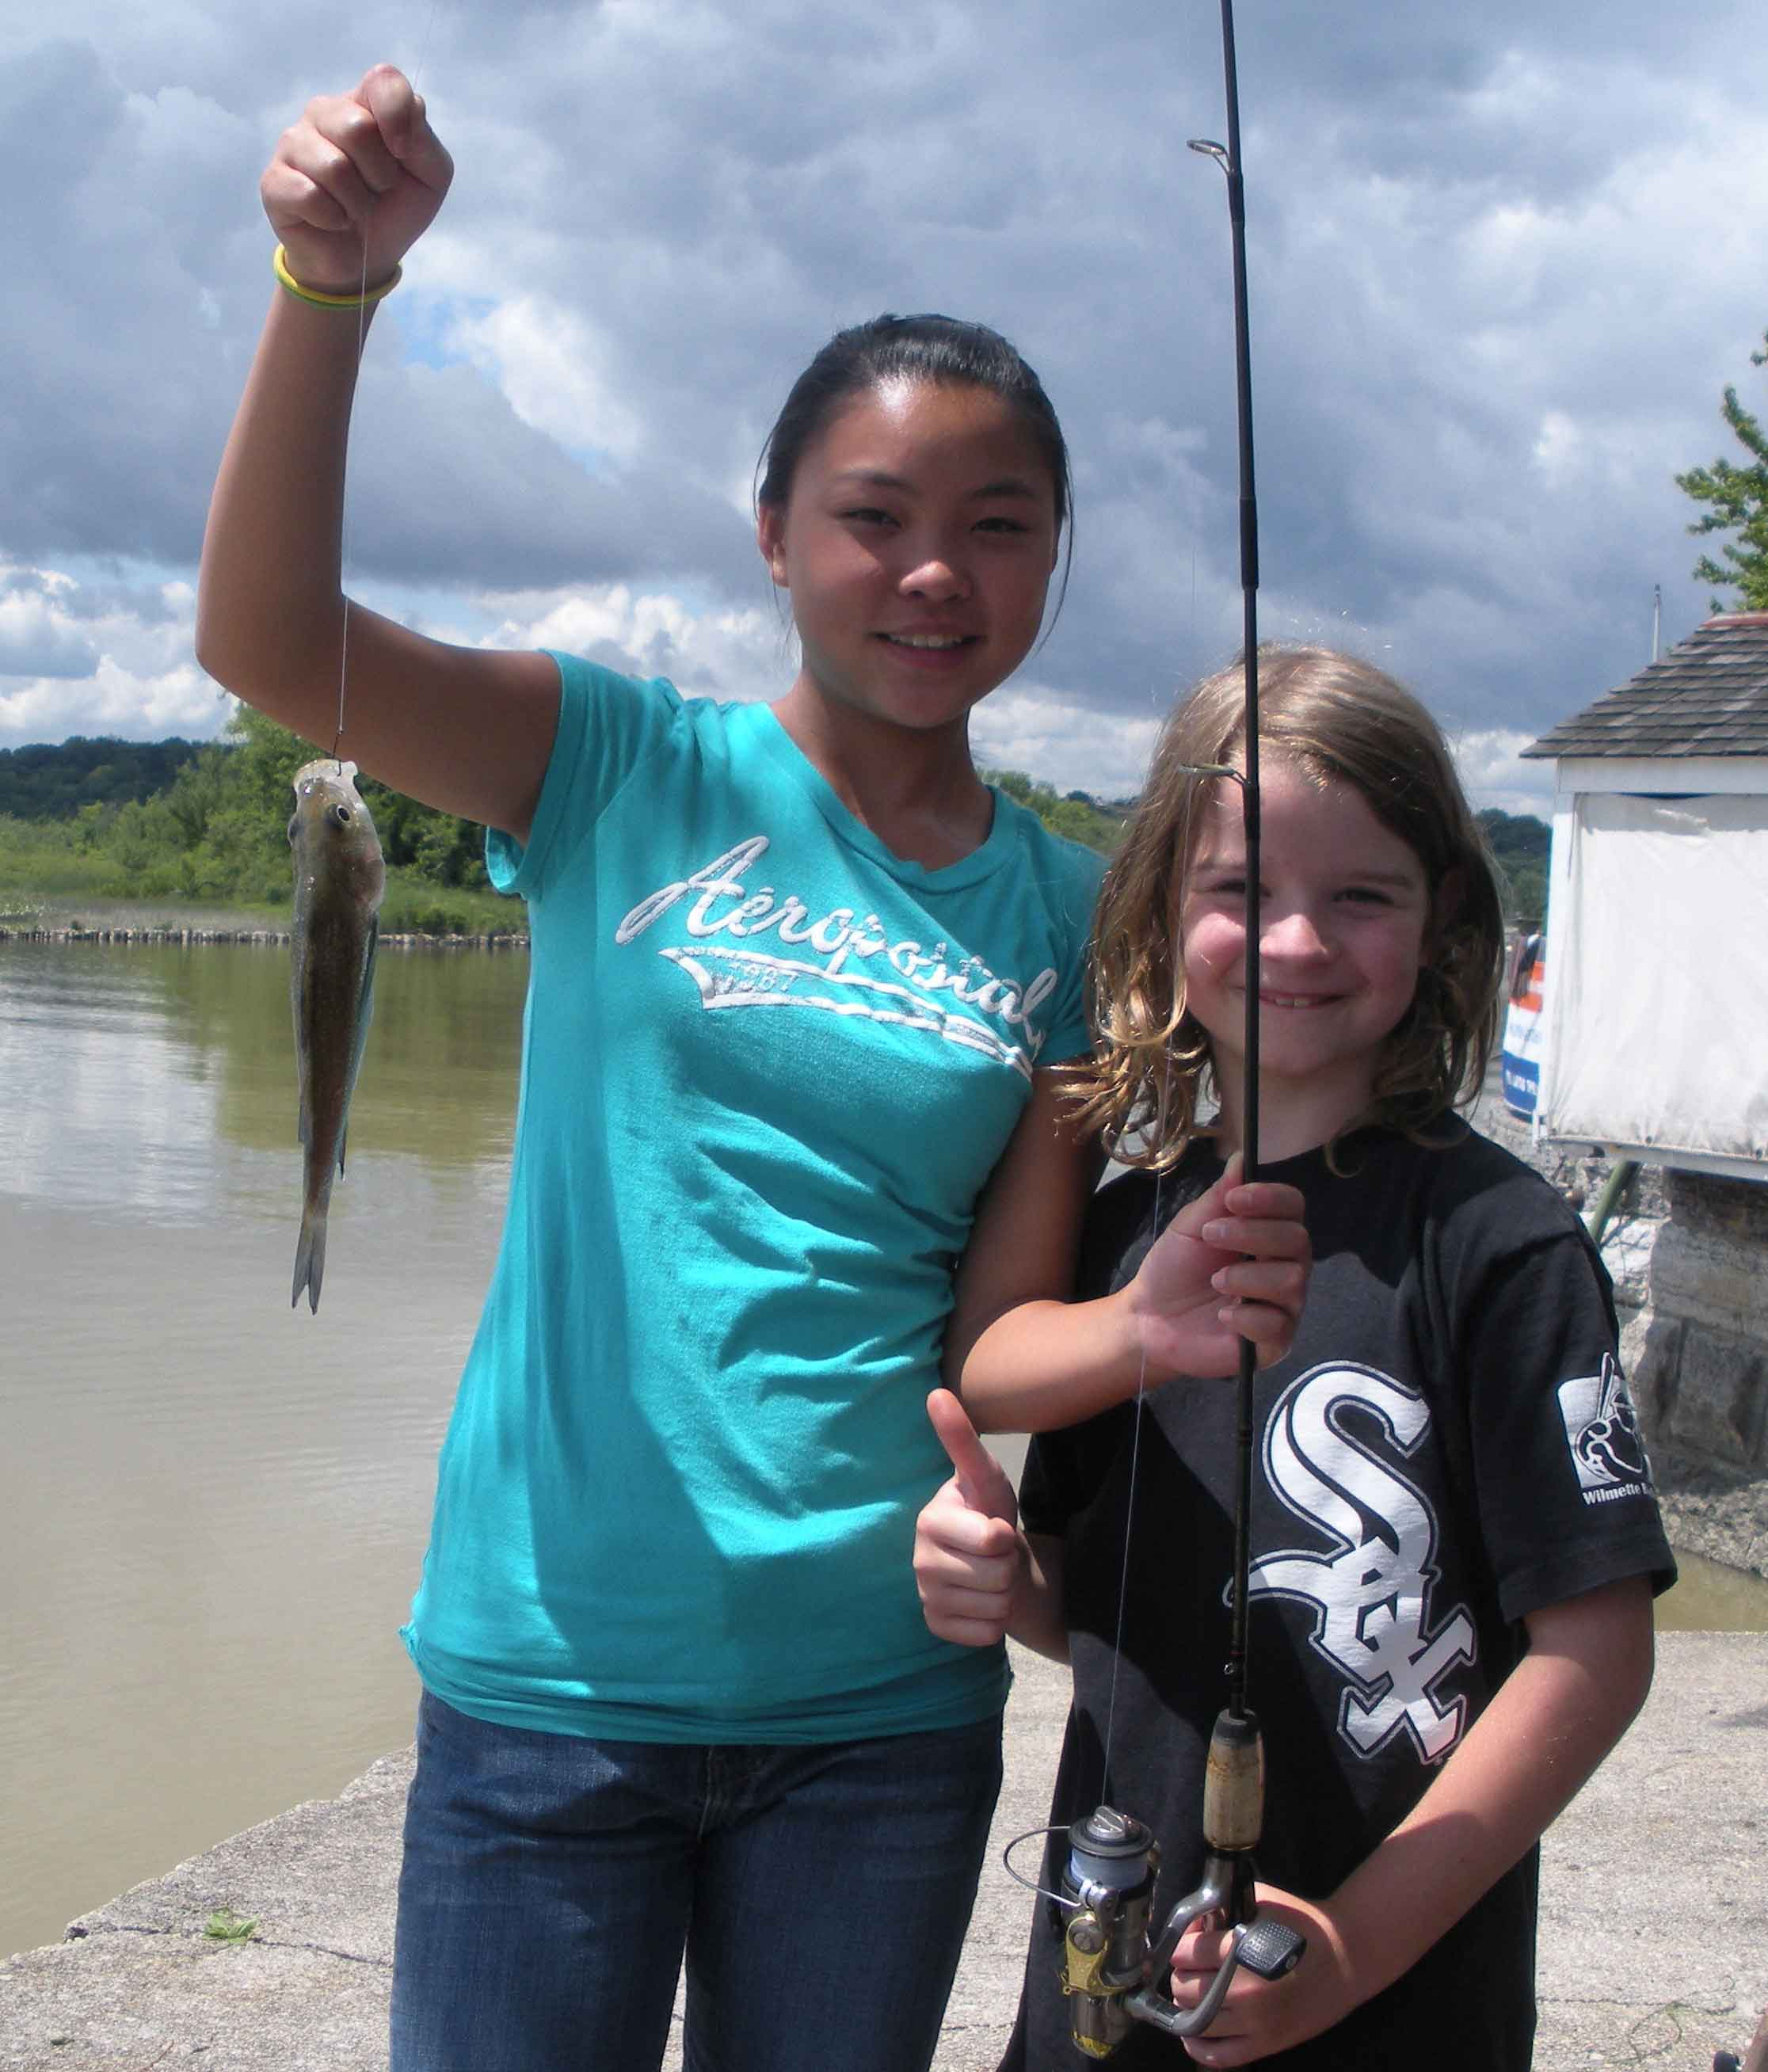 White Sox fan Sam Schmidt (above right) stands as his cousin Jade Forman displays the first fish Sam ever caught on July 10, 2009, at the Hudson River lighthouse in Saugerties, New York. Sam Schmidt, Substance elementary education editor and nature photographer, joined the early boycott of standardized testing in the USA on May 11 and May 12, 2010, by sitting out the tests at his public school in Chicago, while American teachers decide whether to join with their British brothers and sisters in ending the noisome reign of so-called standardized tests in the USA. Substance photo by George N. Schmidt.